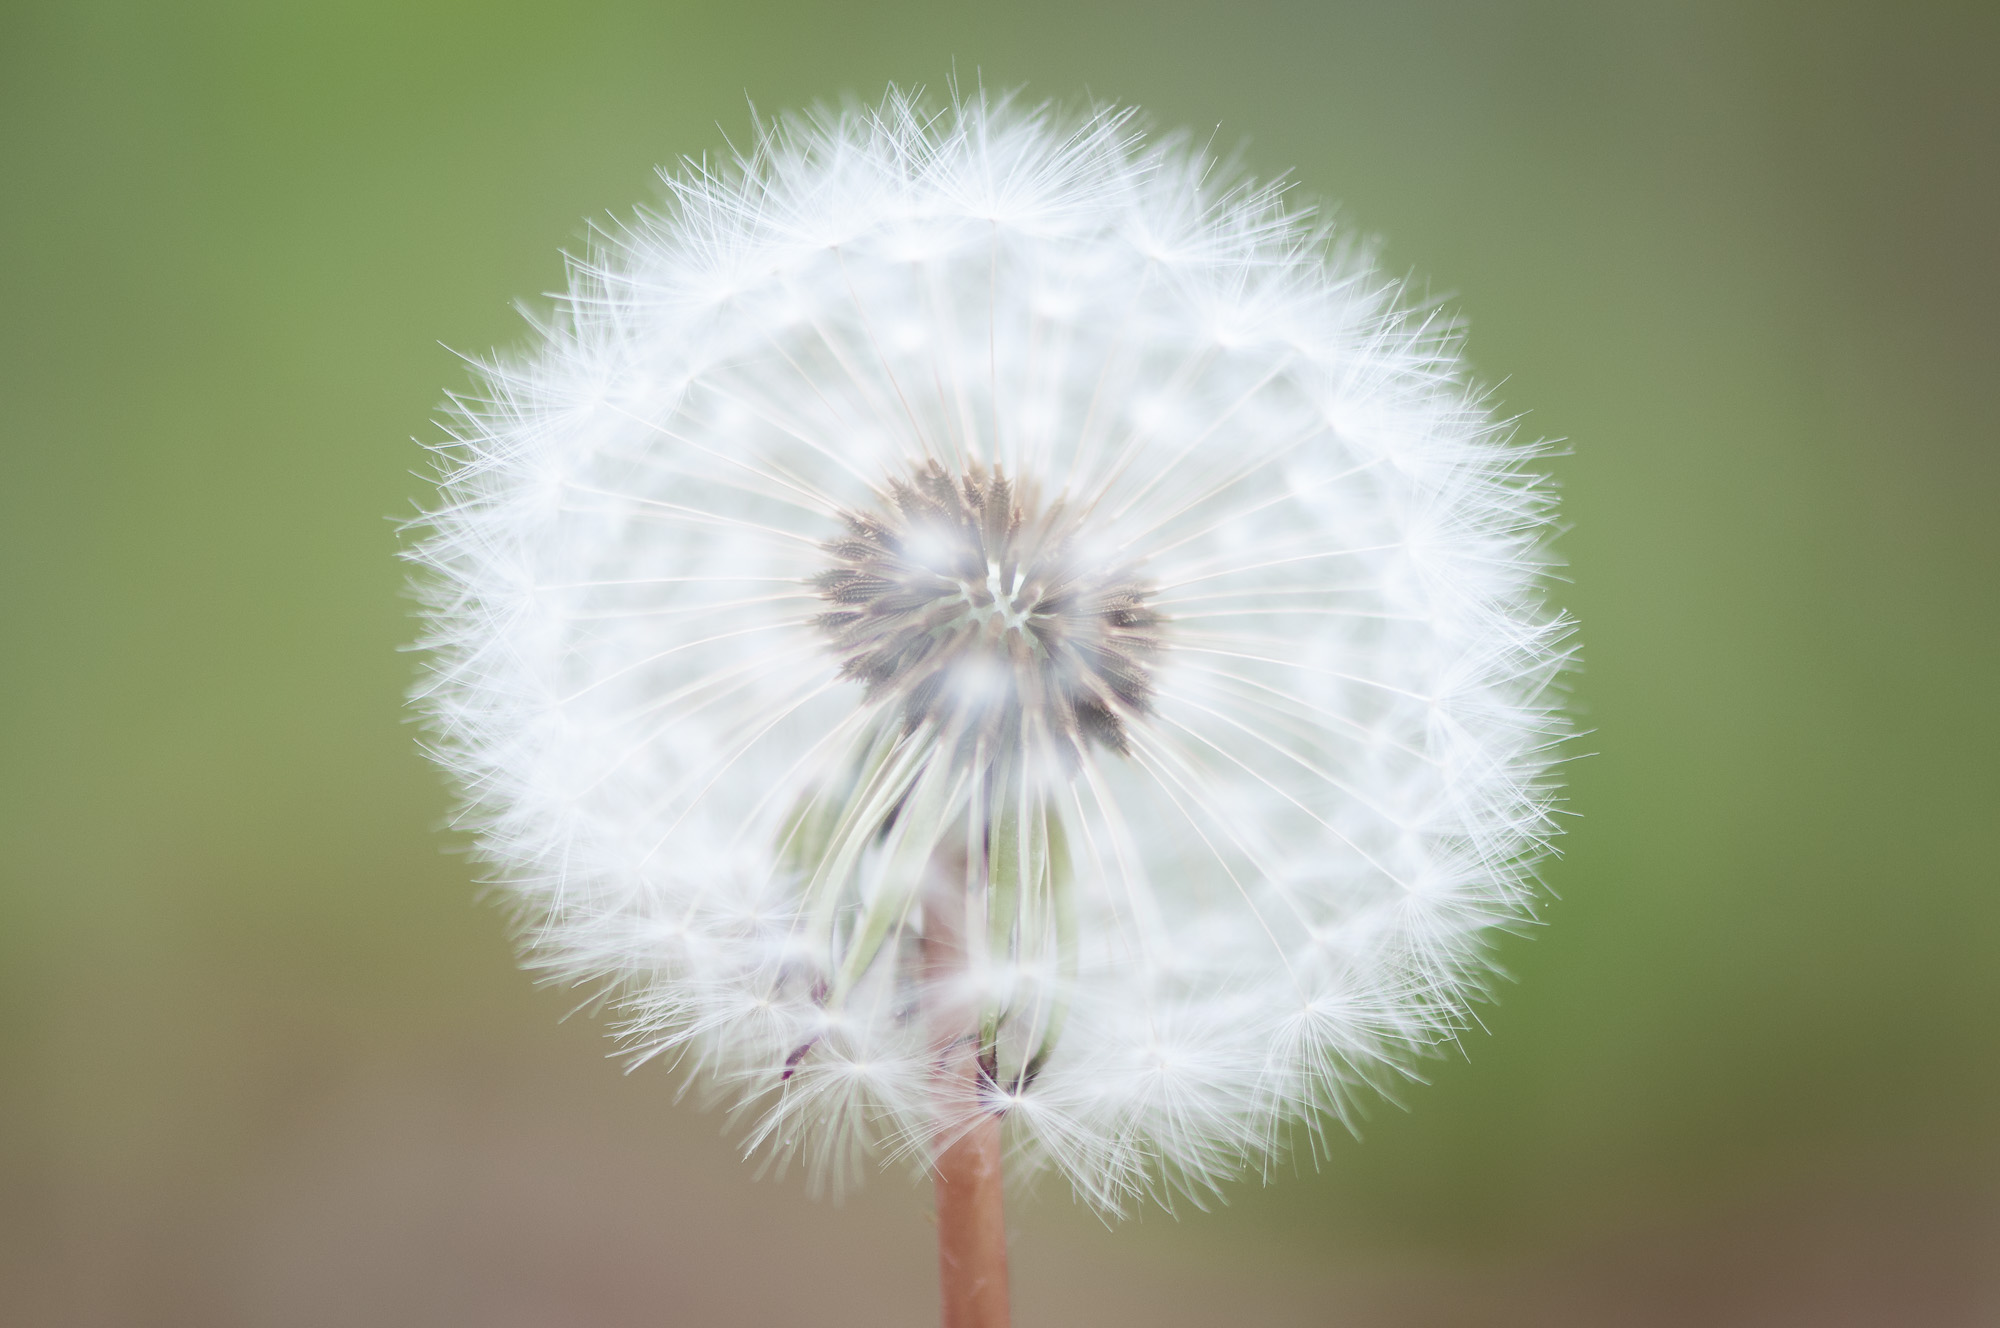 Don't Overlook the Obvious - Dandelion Puffball